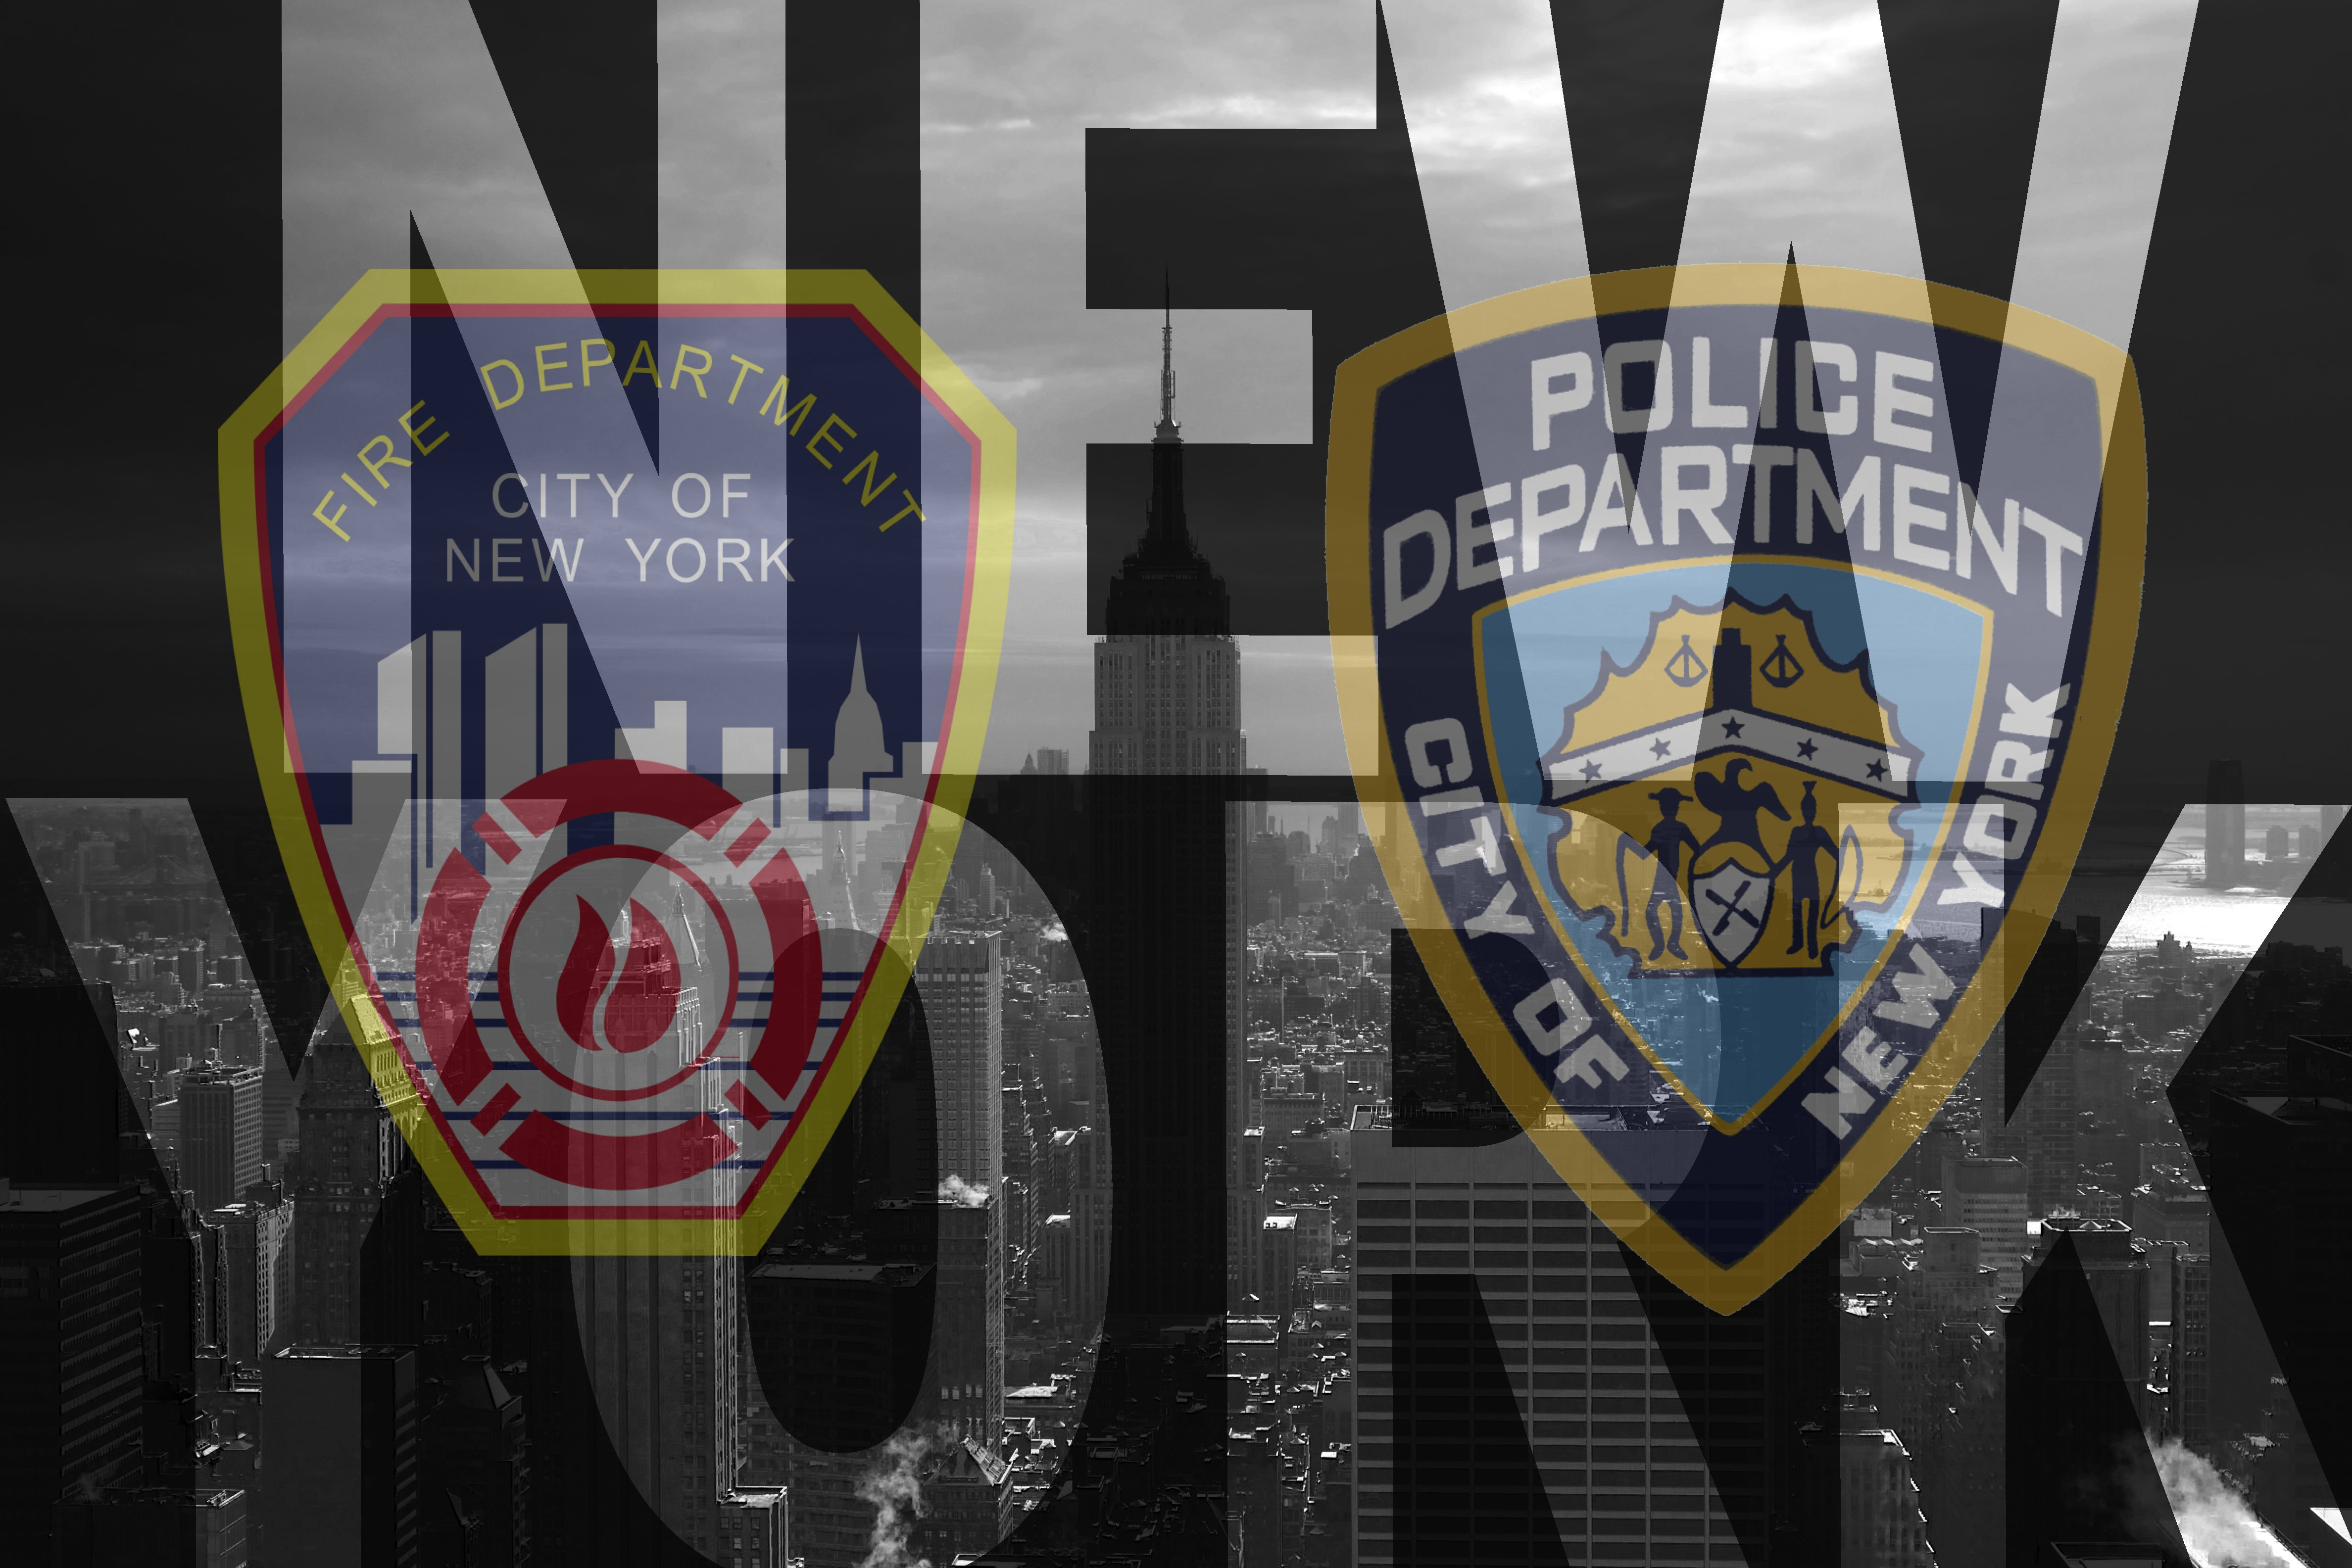 NEW YORK NYPD FDNY wallpaper 4752x3168 604220 4752x3168